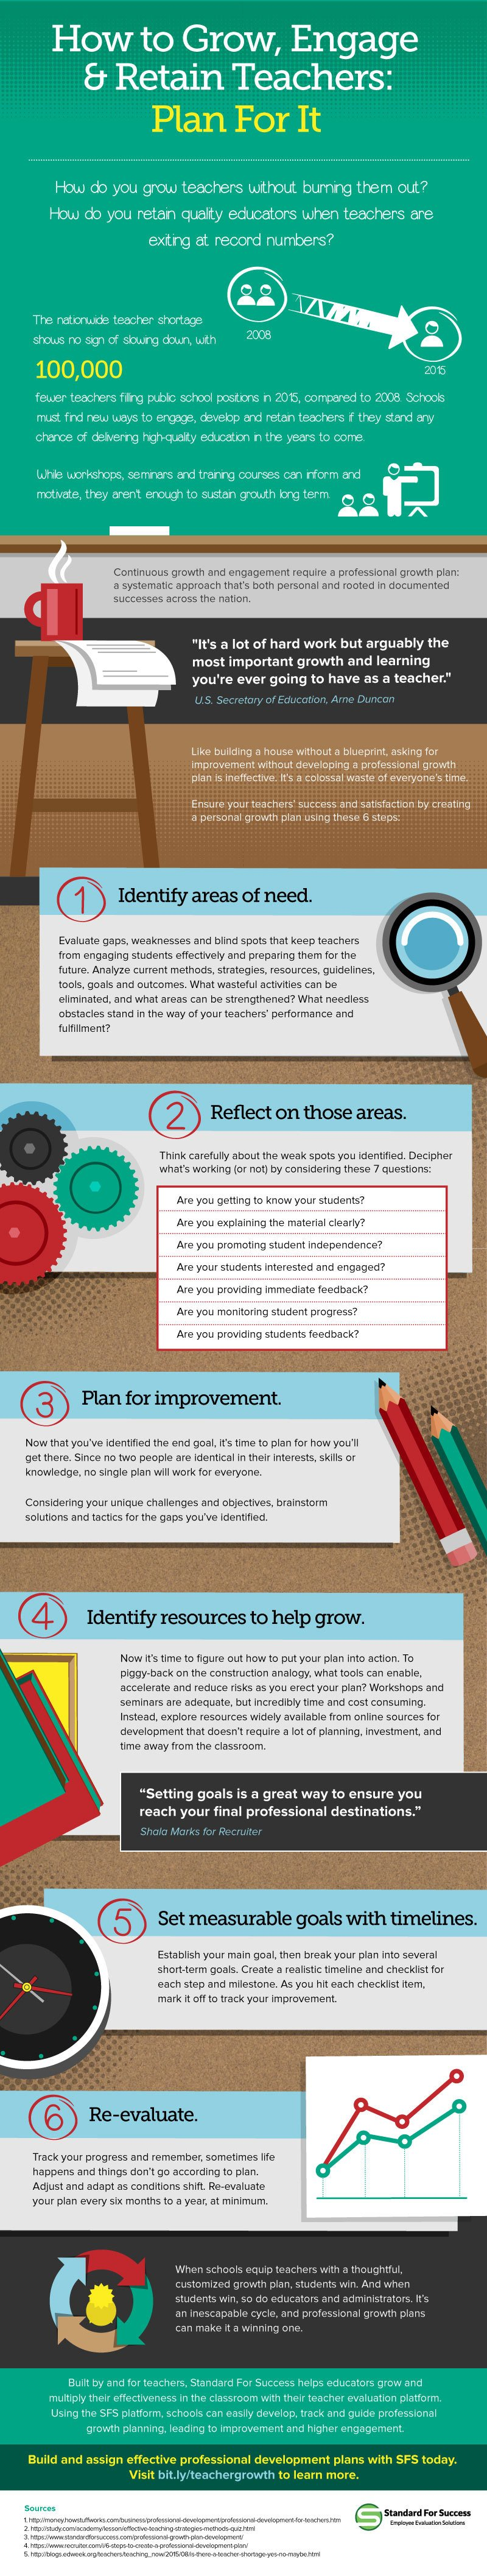 How to Grow, Engage and Retain Teachers Infographic